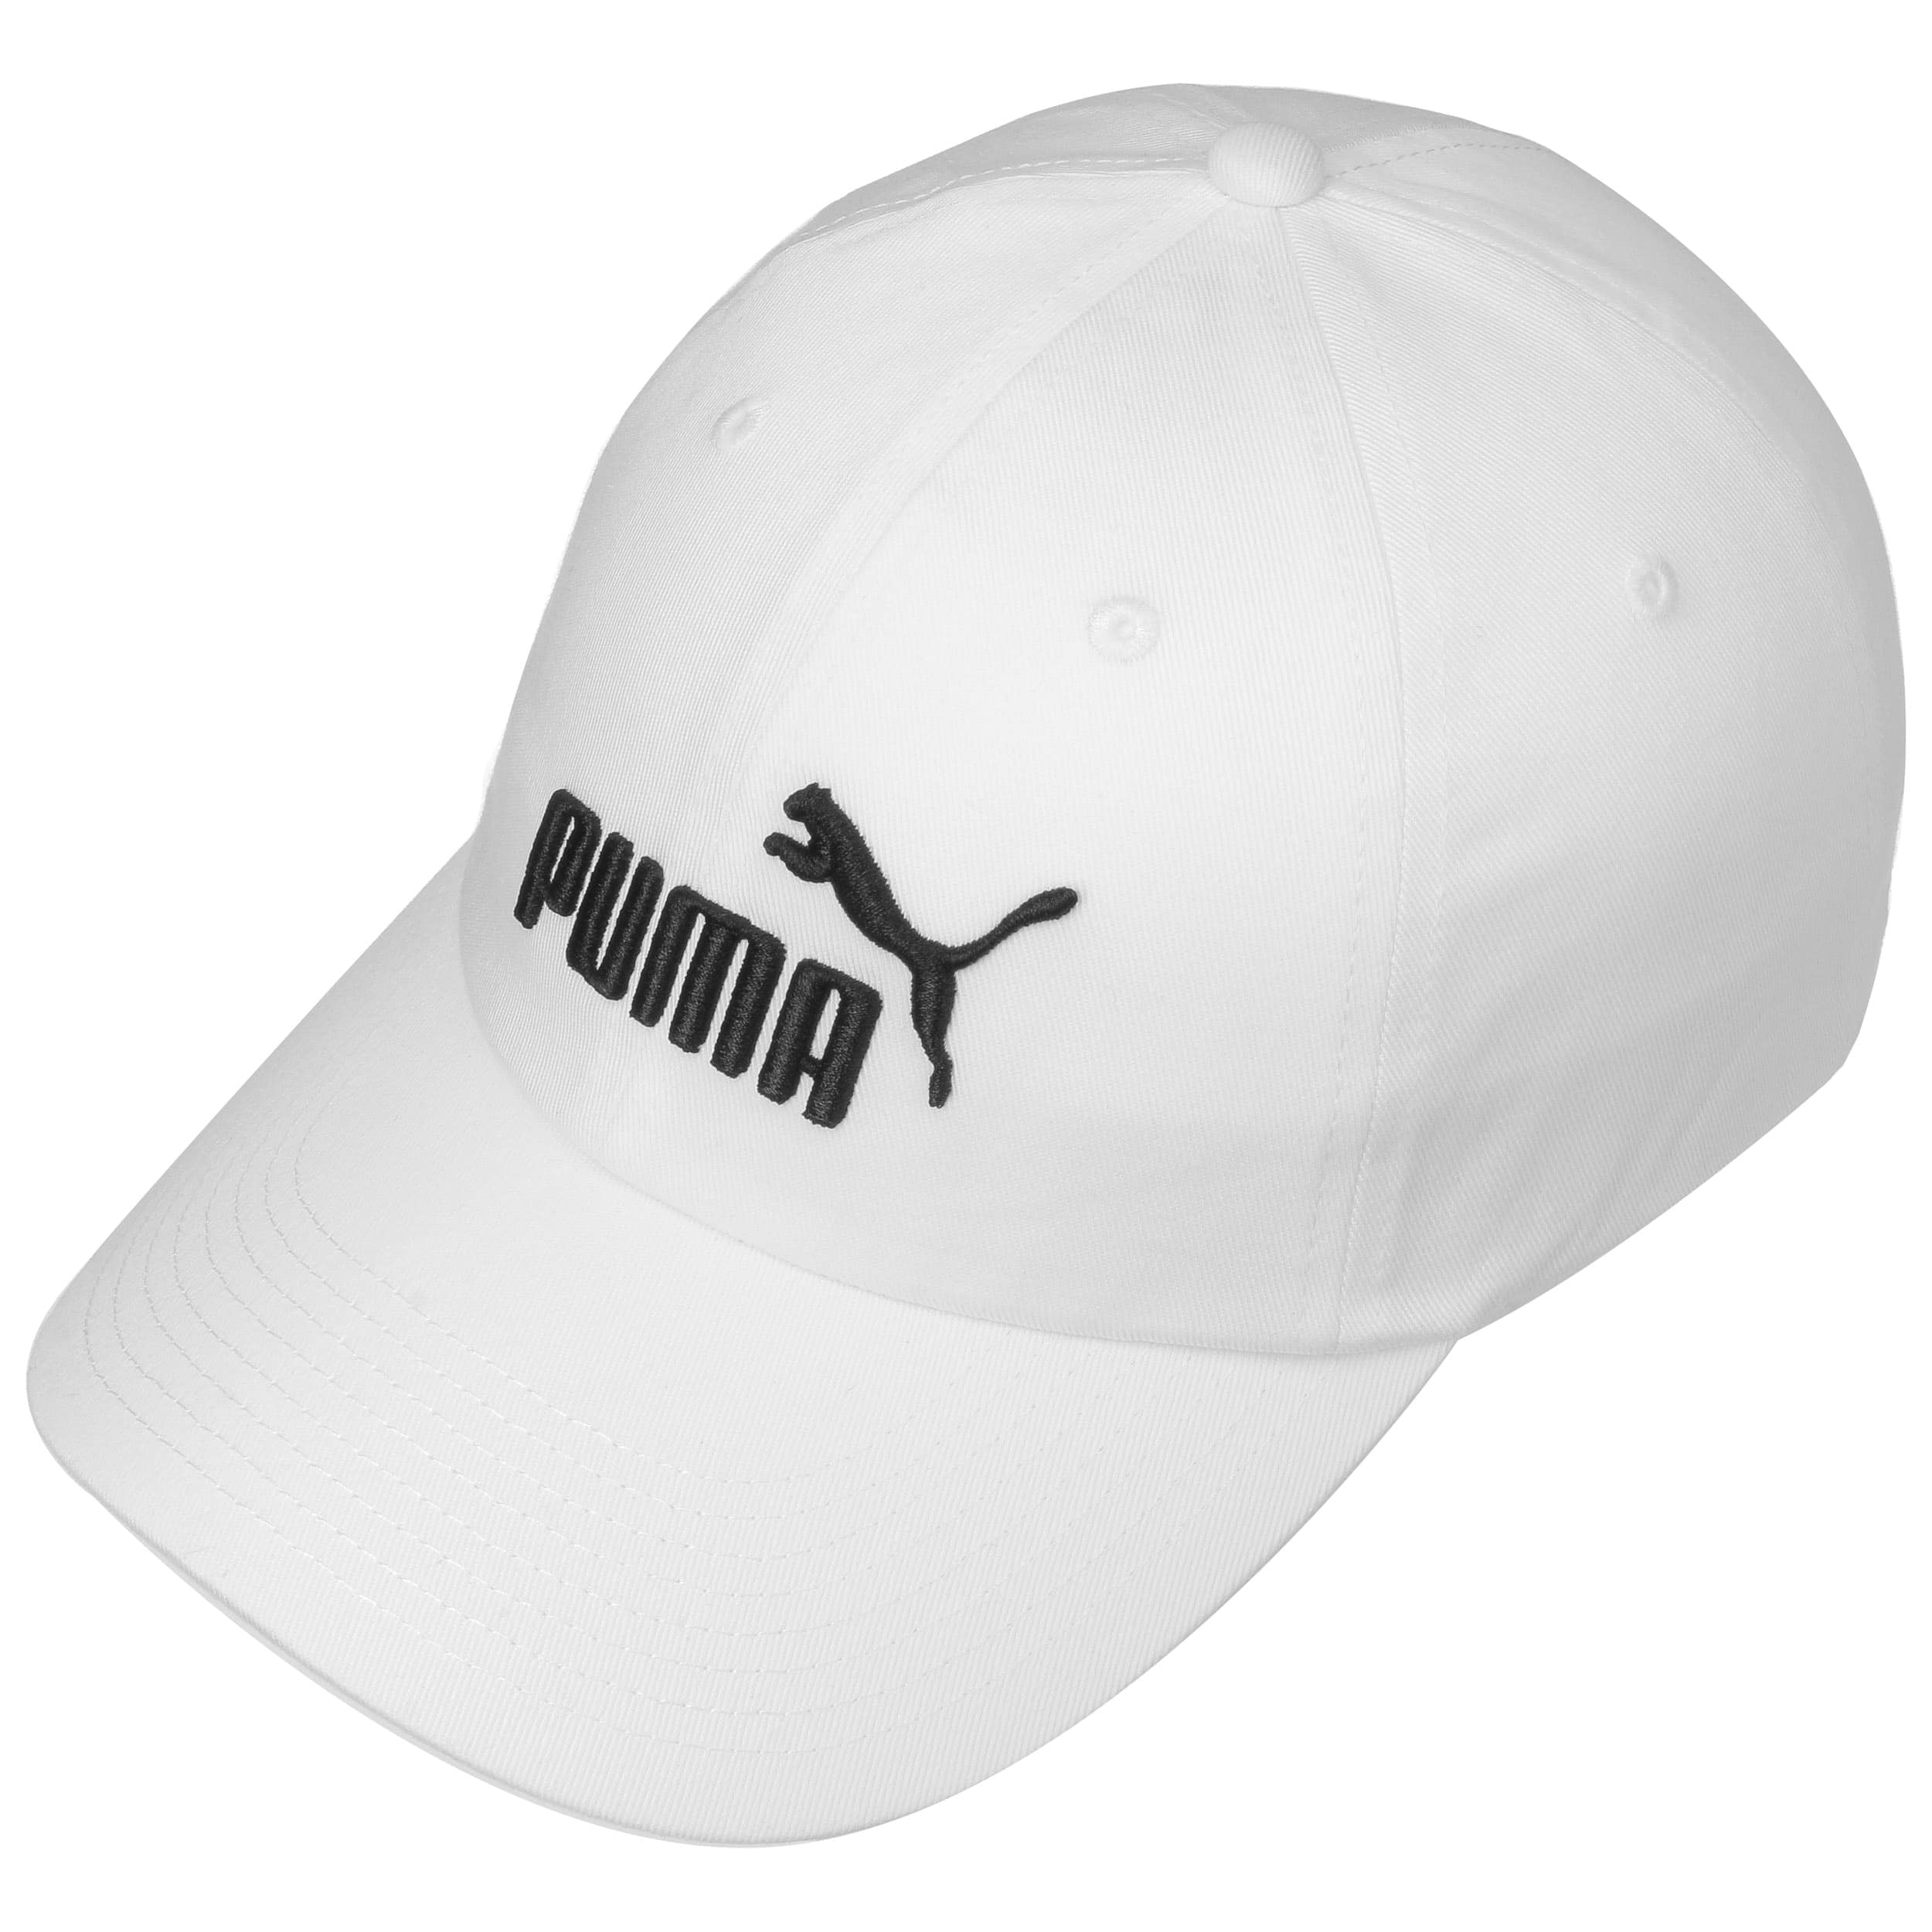 ... new zealand 1 baseball cap by puma white 1 e823f 73ba6 1299965251b1